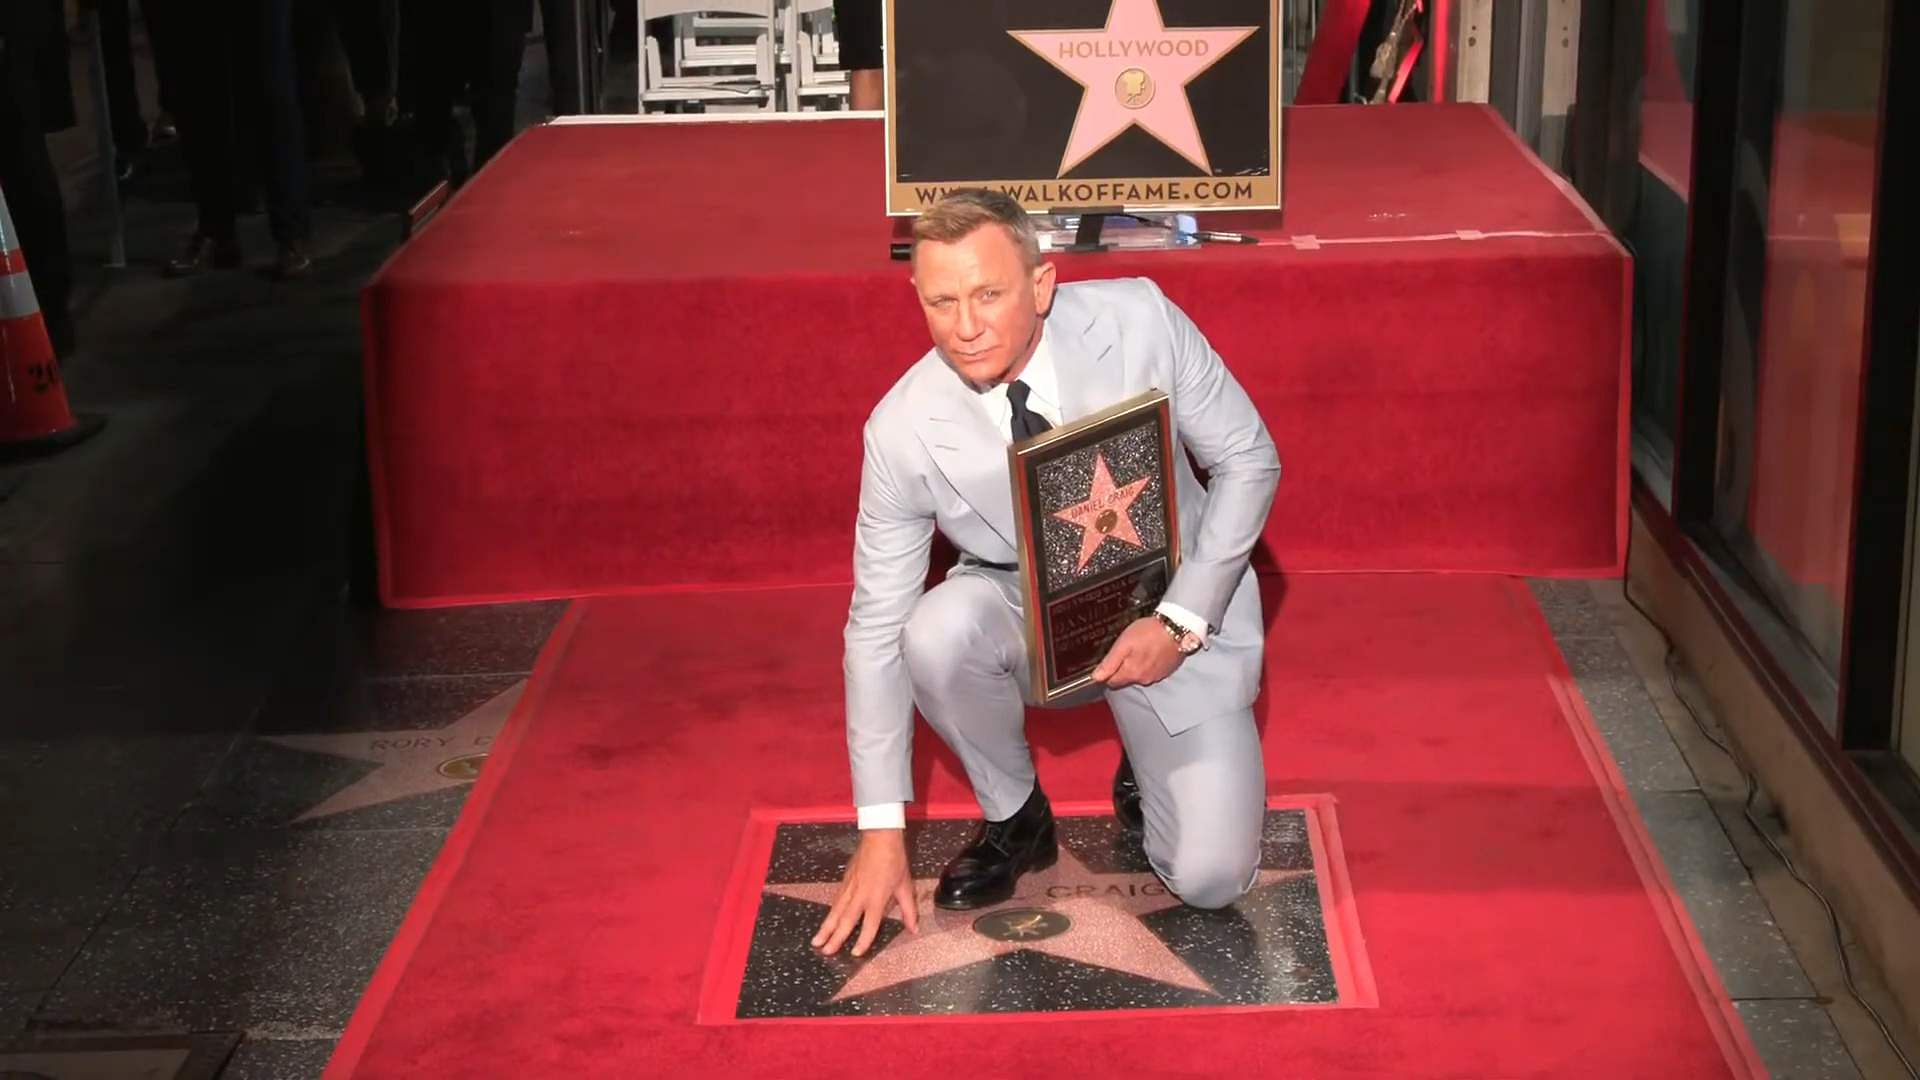 Role of Honour: Daniel awarded a Walk of Fame Star